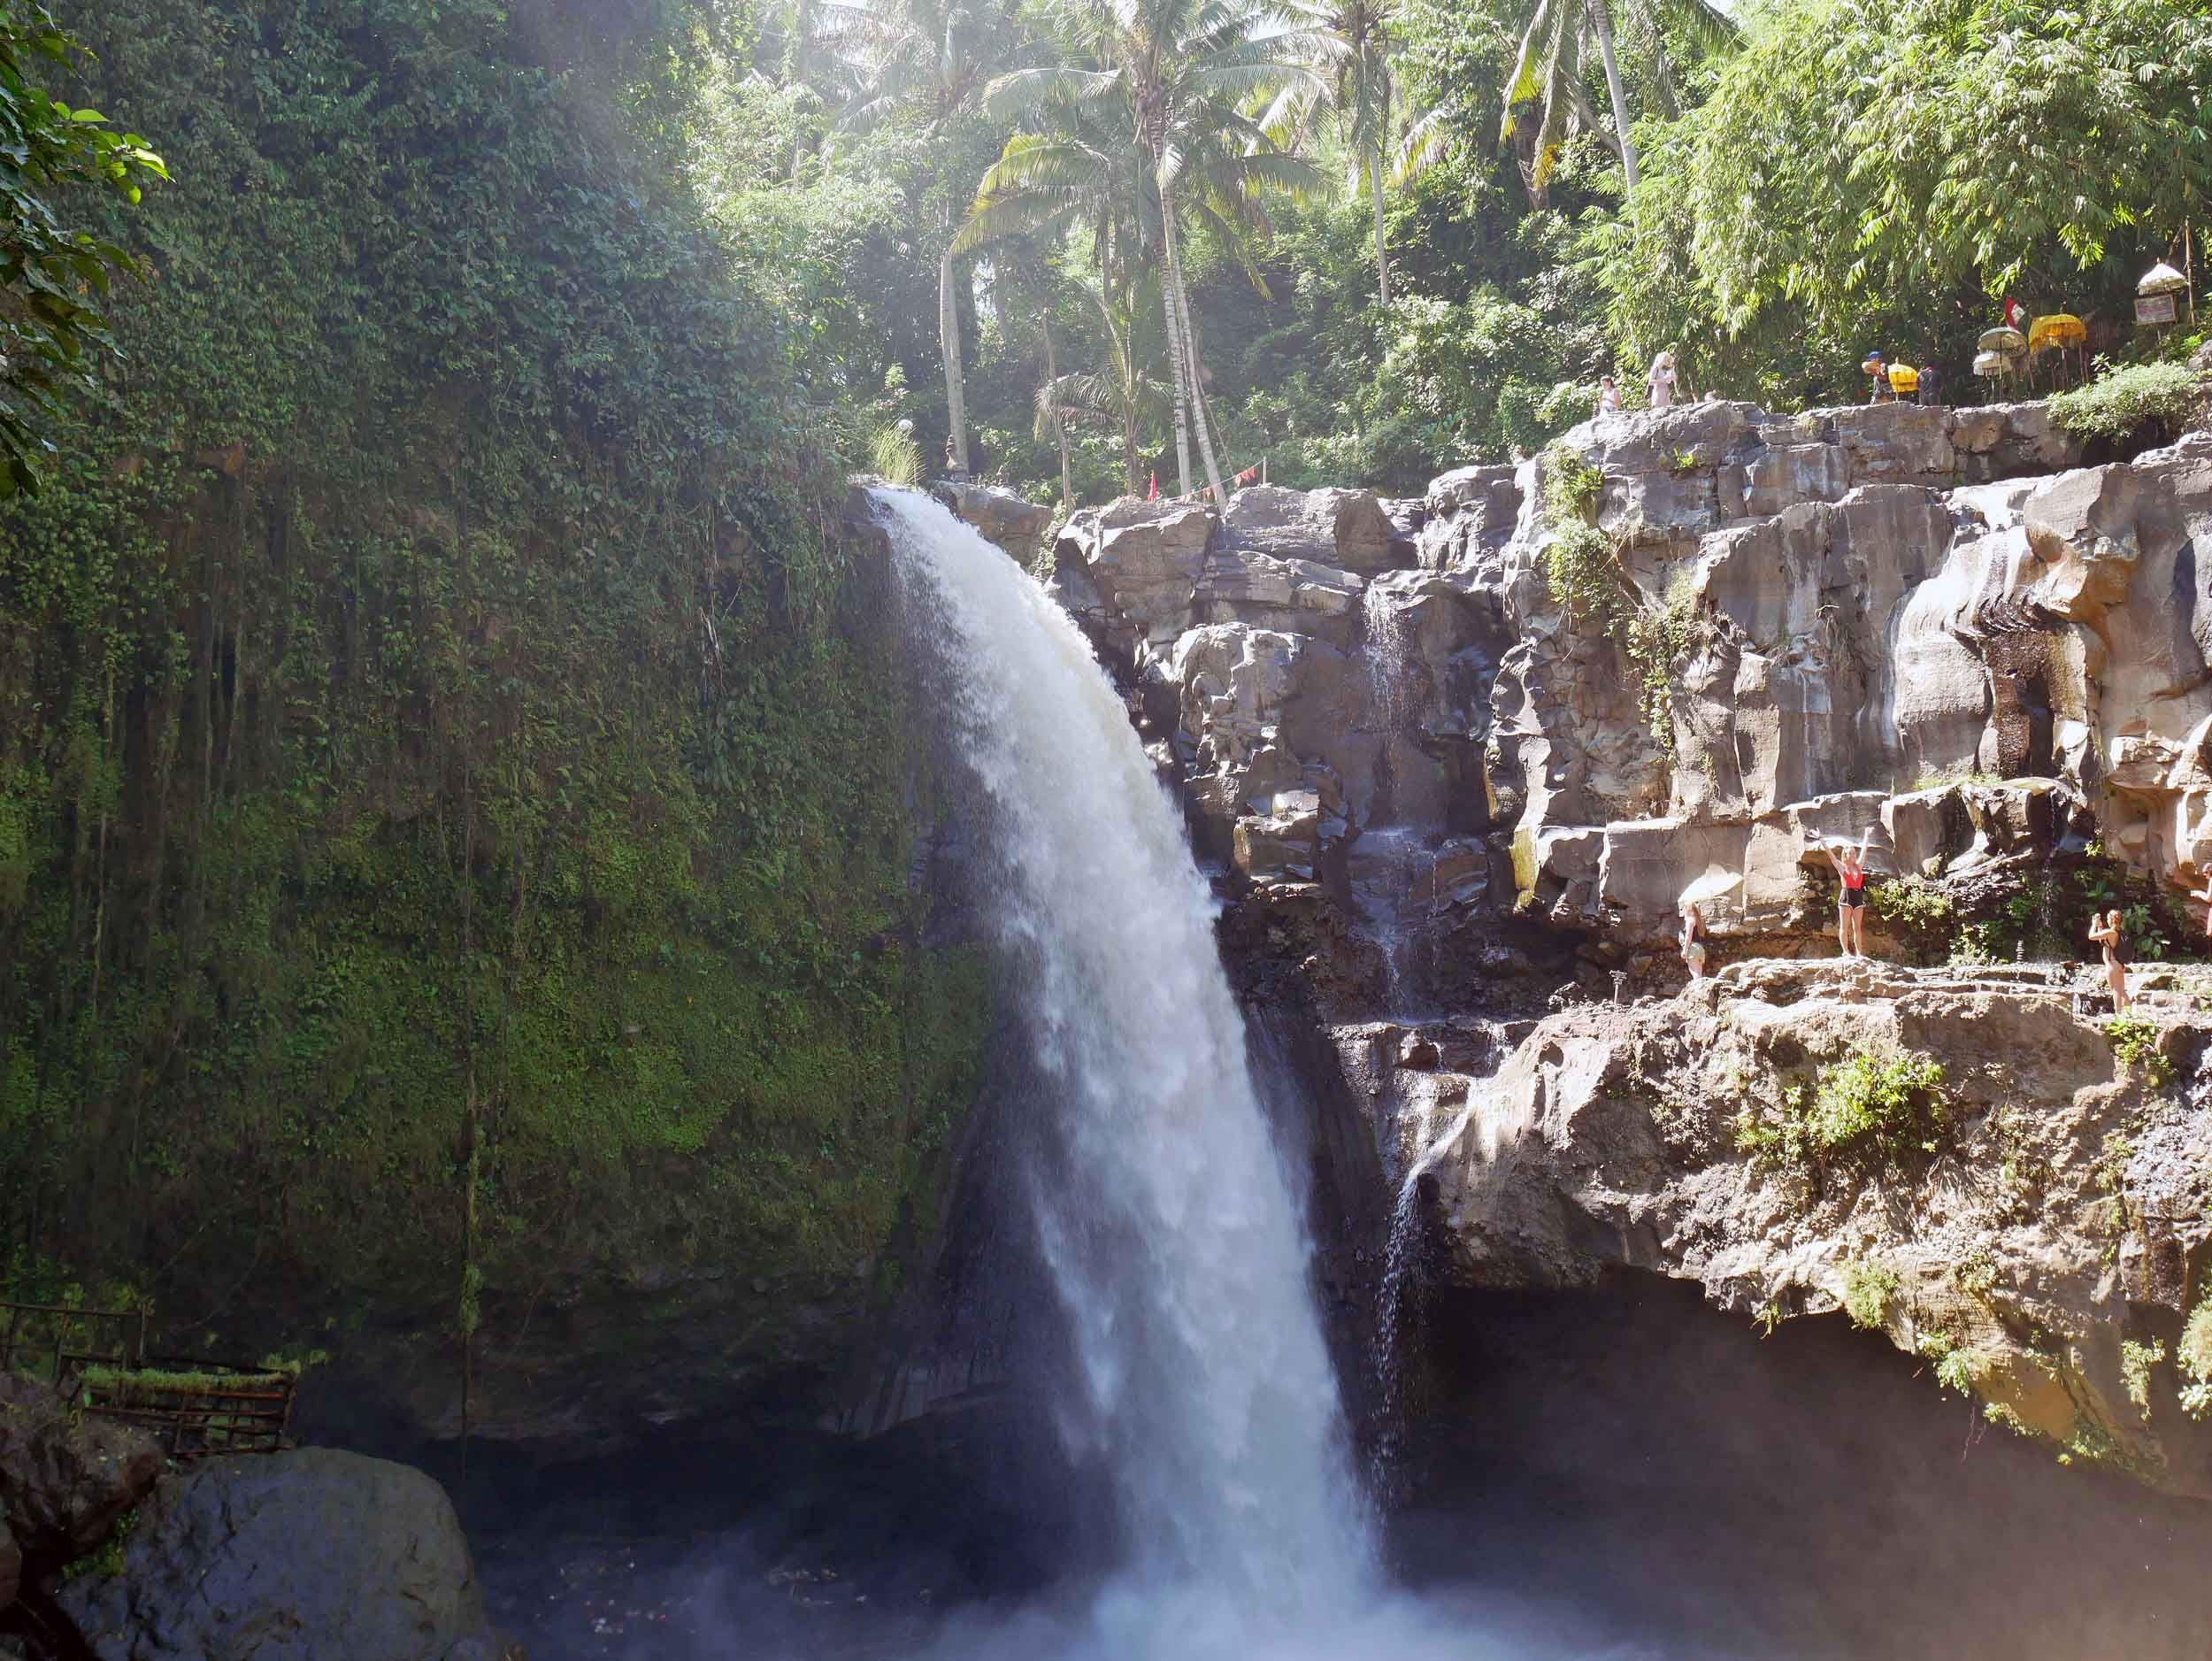 We spent one of our days in Ubud as tourists with our first stop to visit the surging Tegenungan Waterfall (May 30).